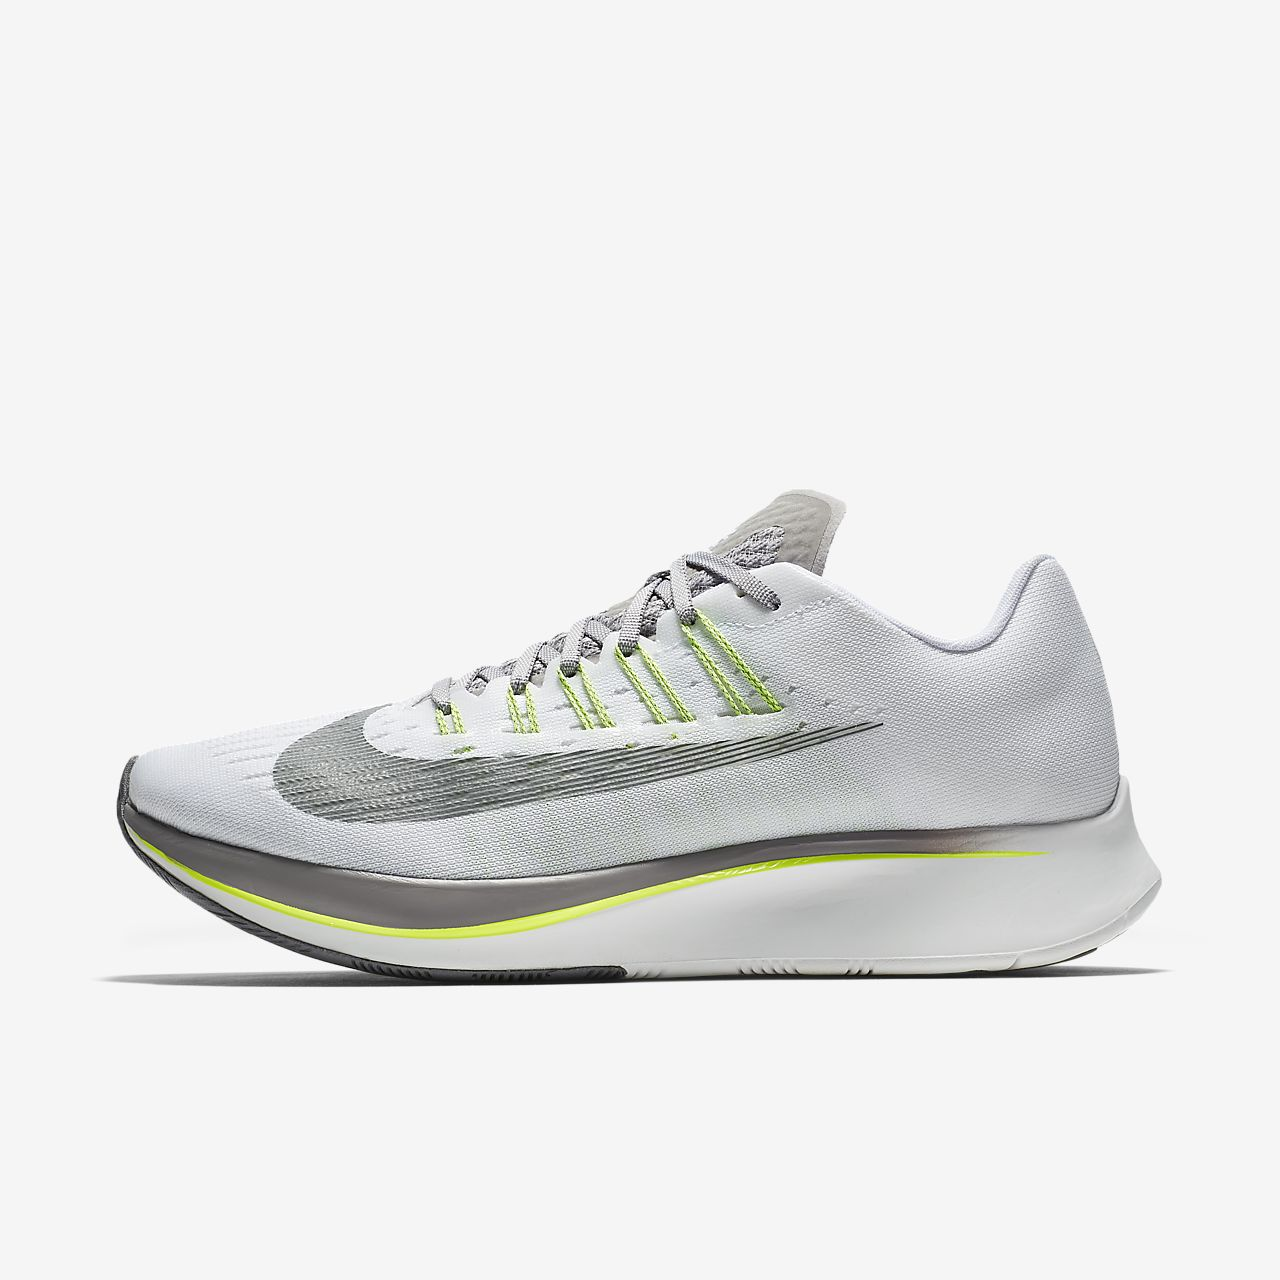 sports shoes 6d13c 91746 ... Nike Zoom Fly Men s Running Shoe